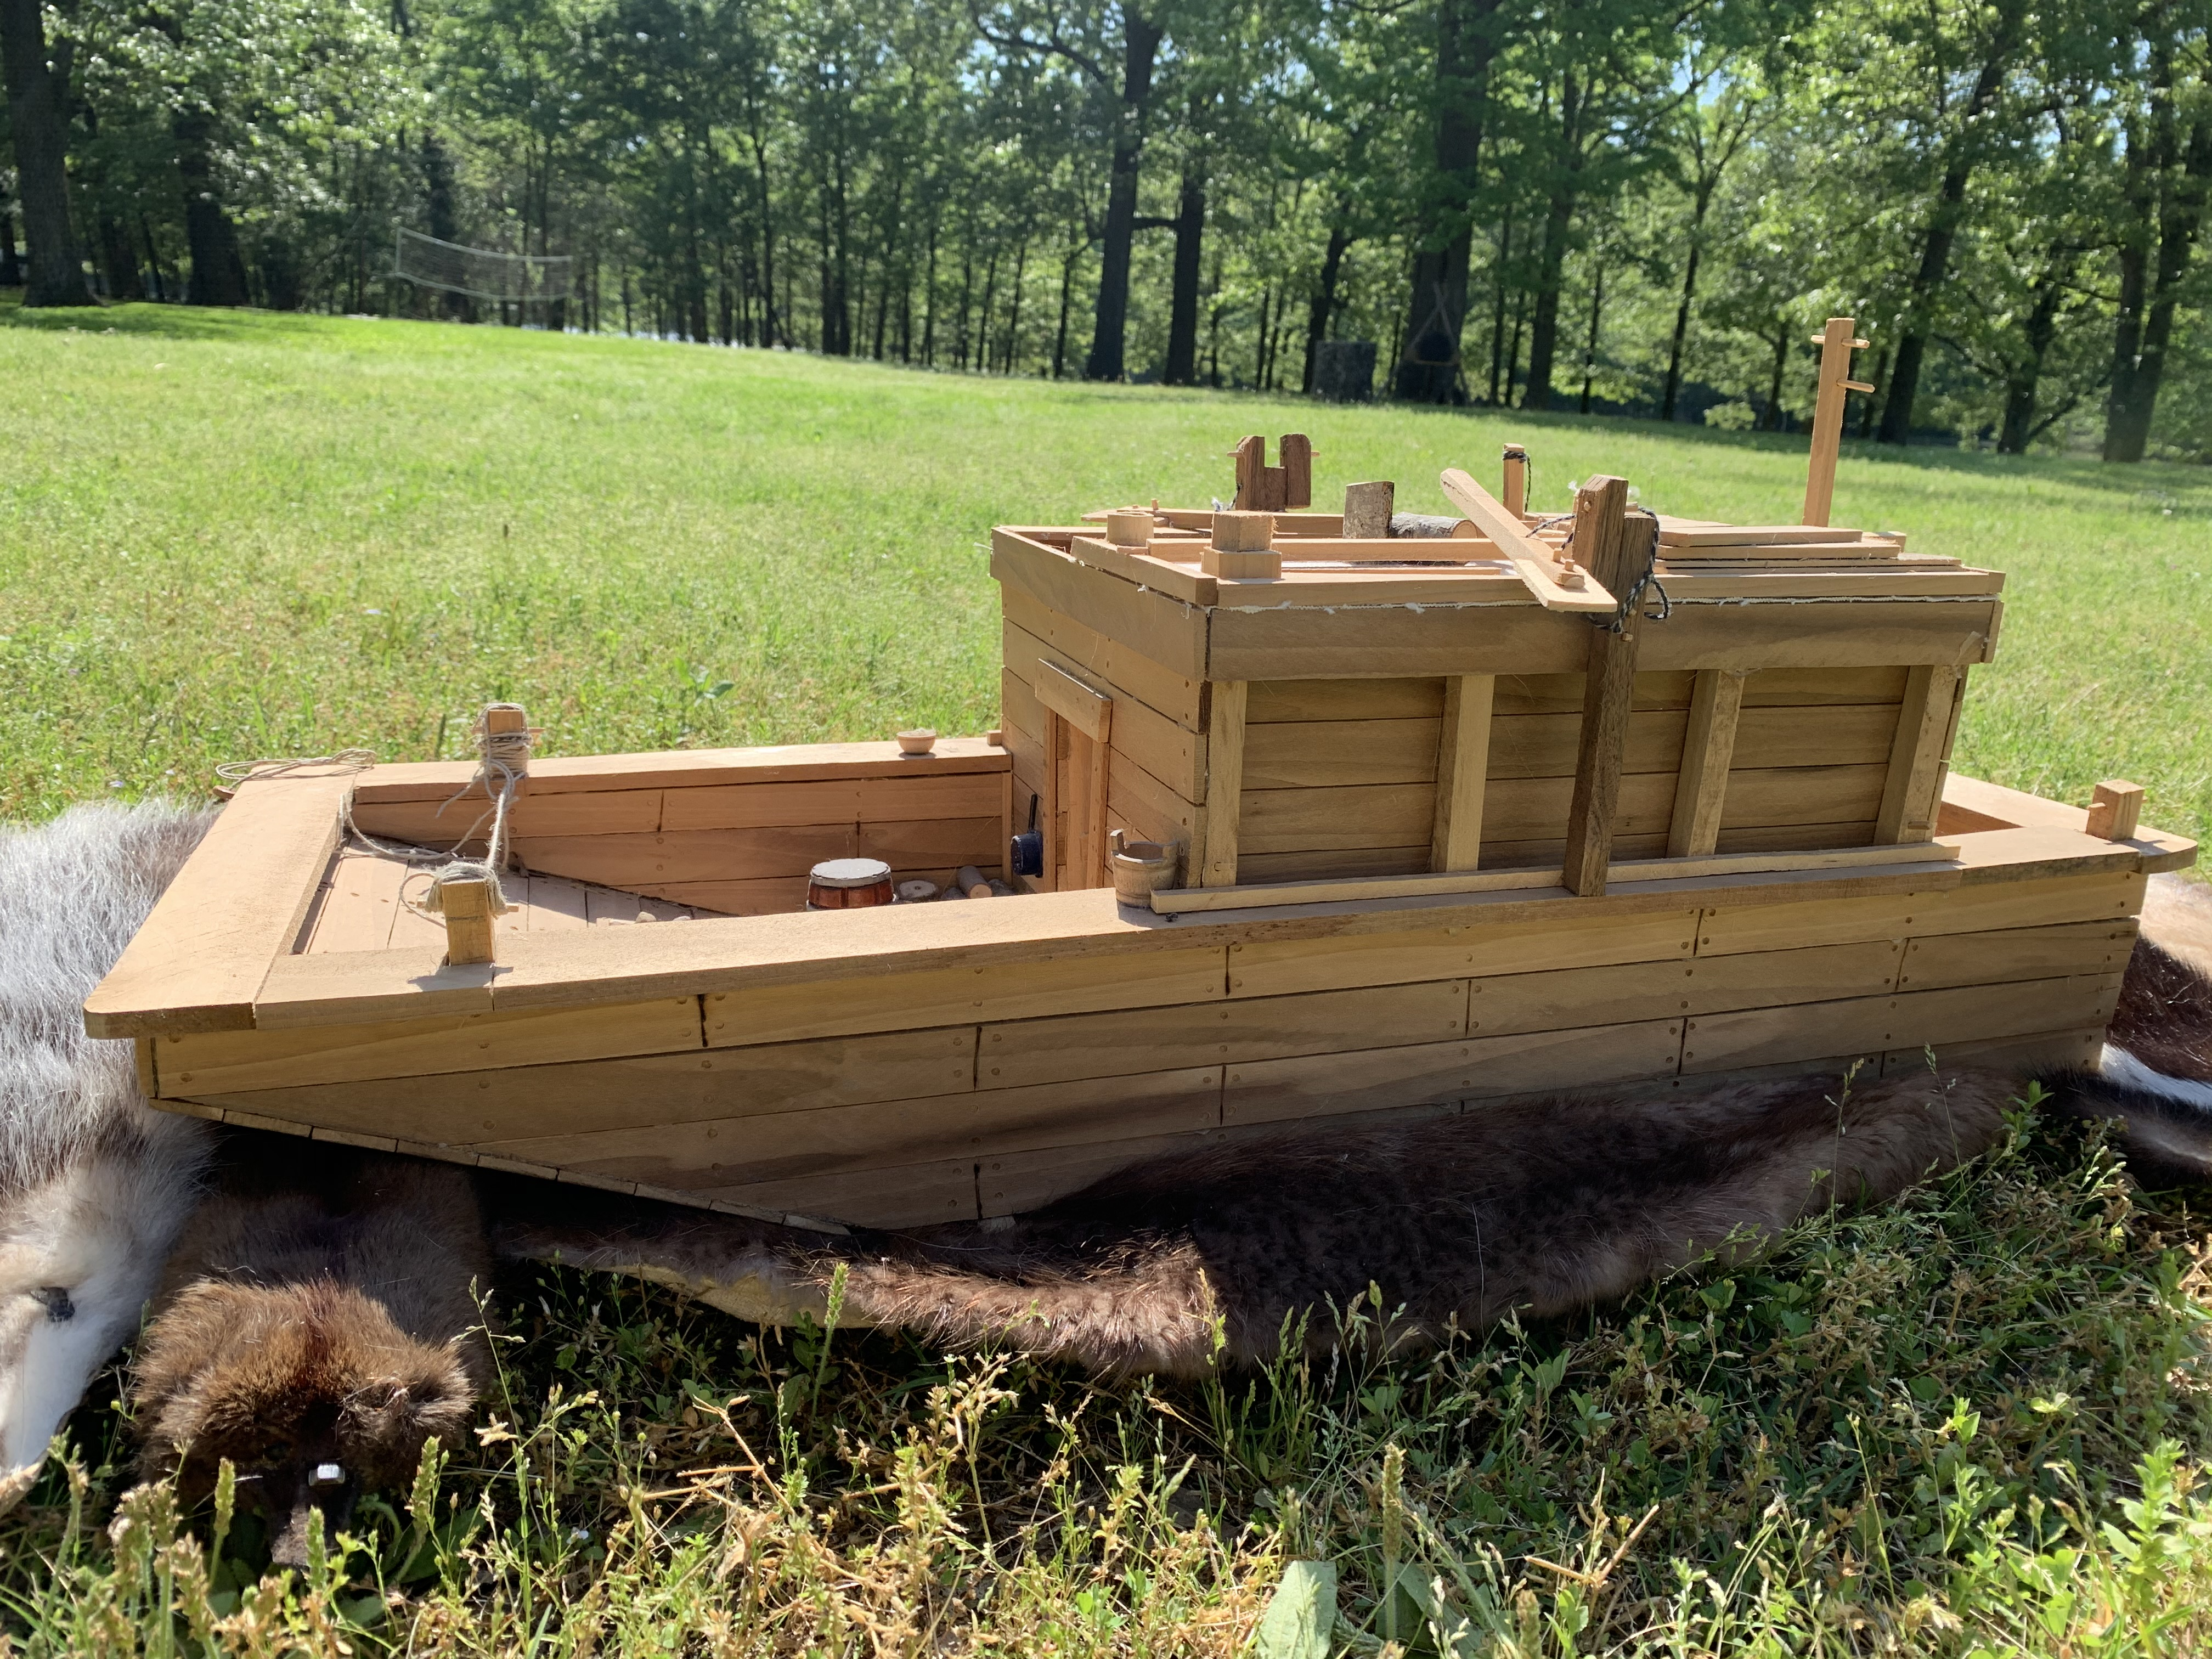 Side view of a small flatboat replica